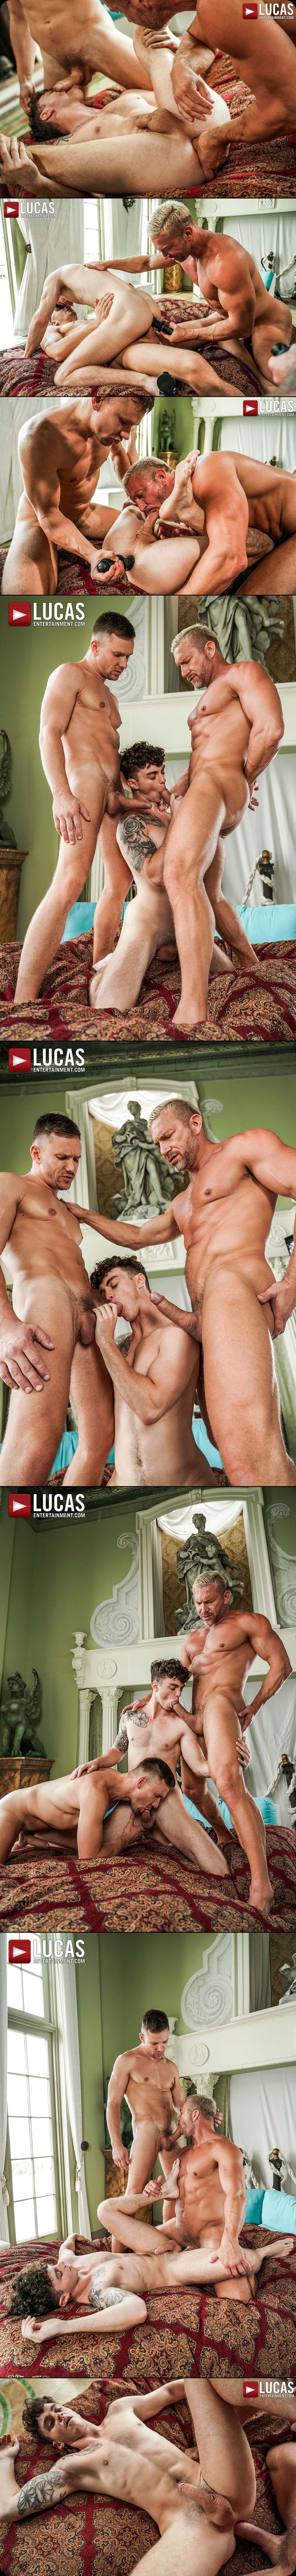 Daddy's In Charge, Scene One (Tomas Brand And Andrey Vic Slam Robert Law) at LucasEntertainment